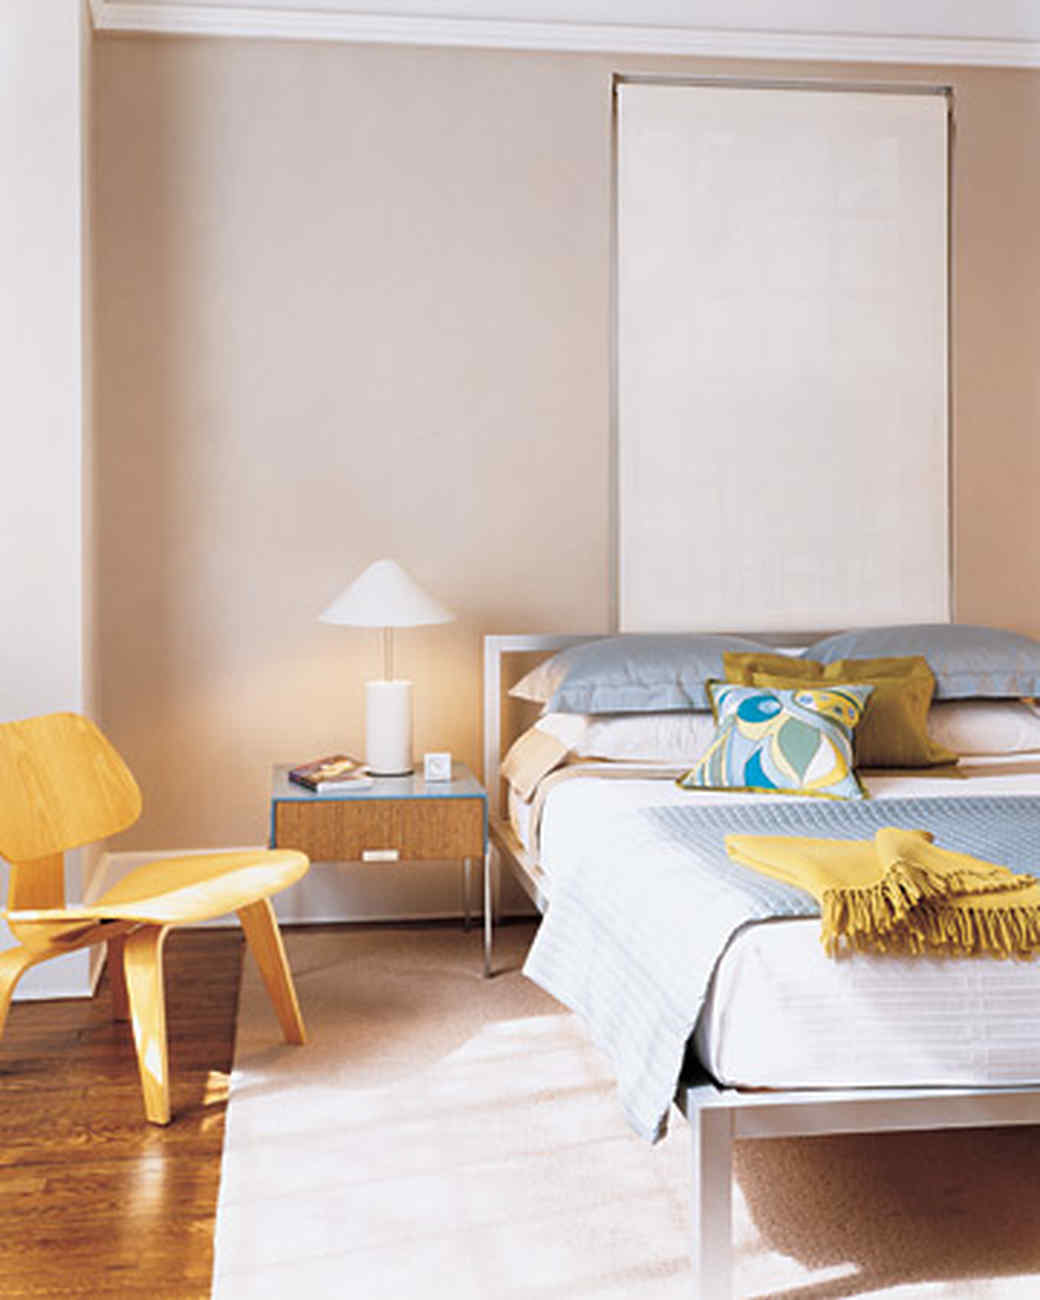 decorating tips for small bedrooms bedroom decorating ideas martha stewart 18621